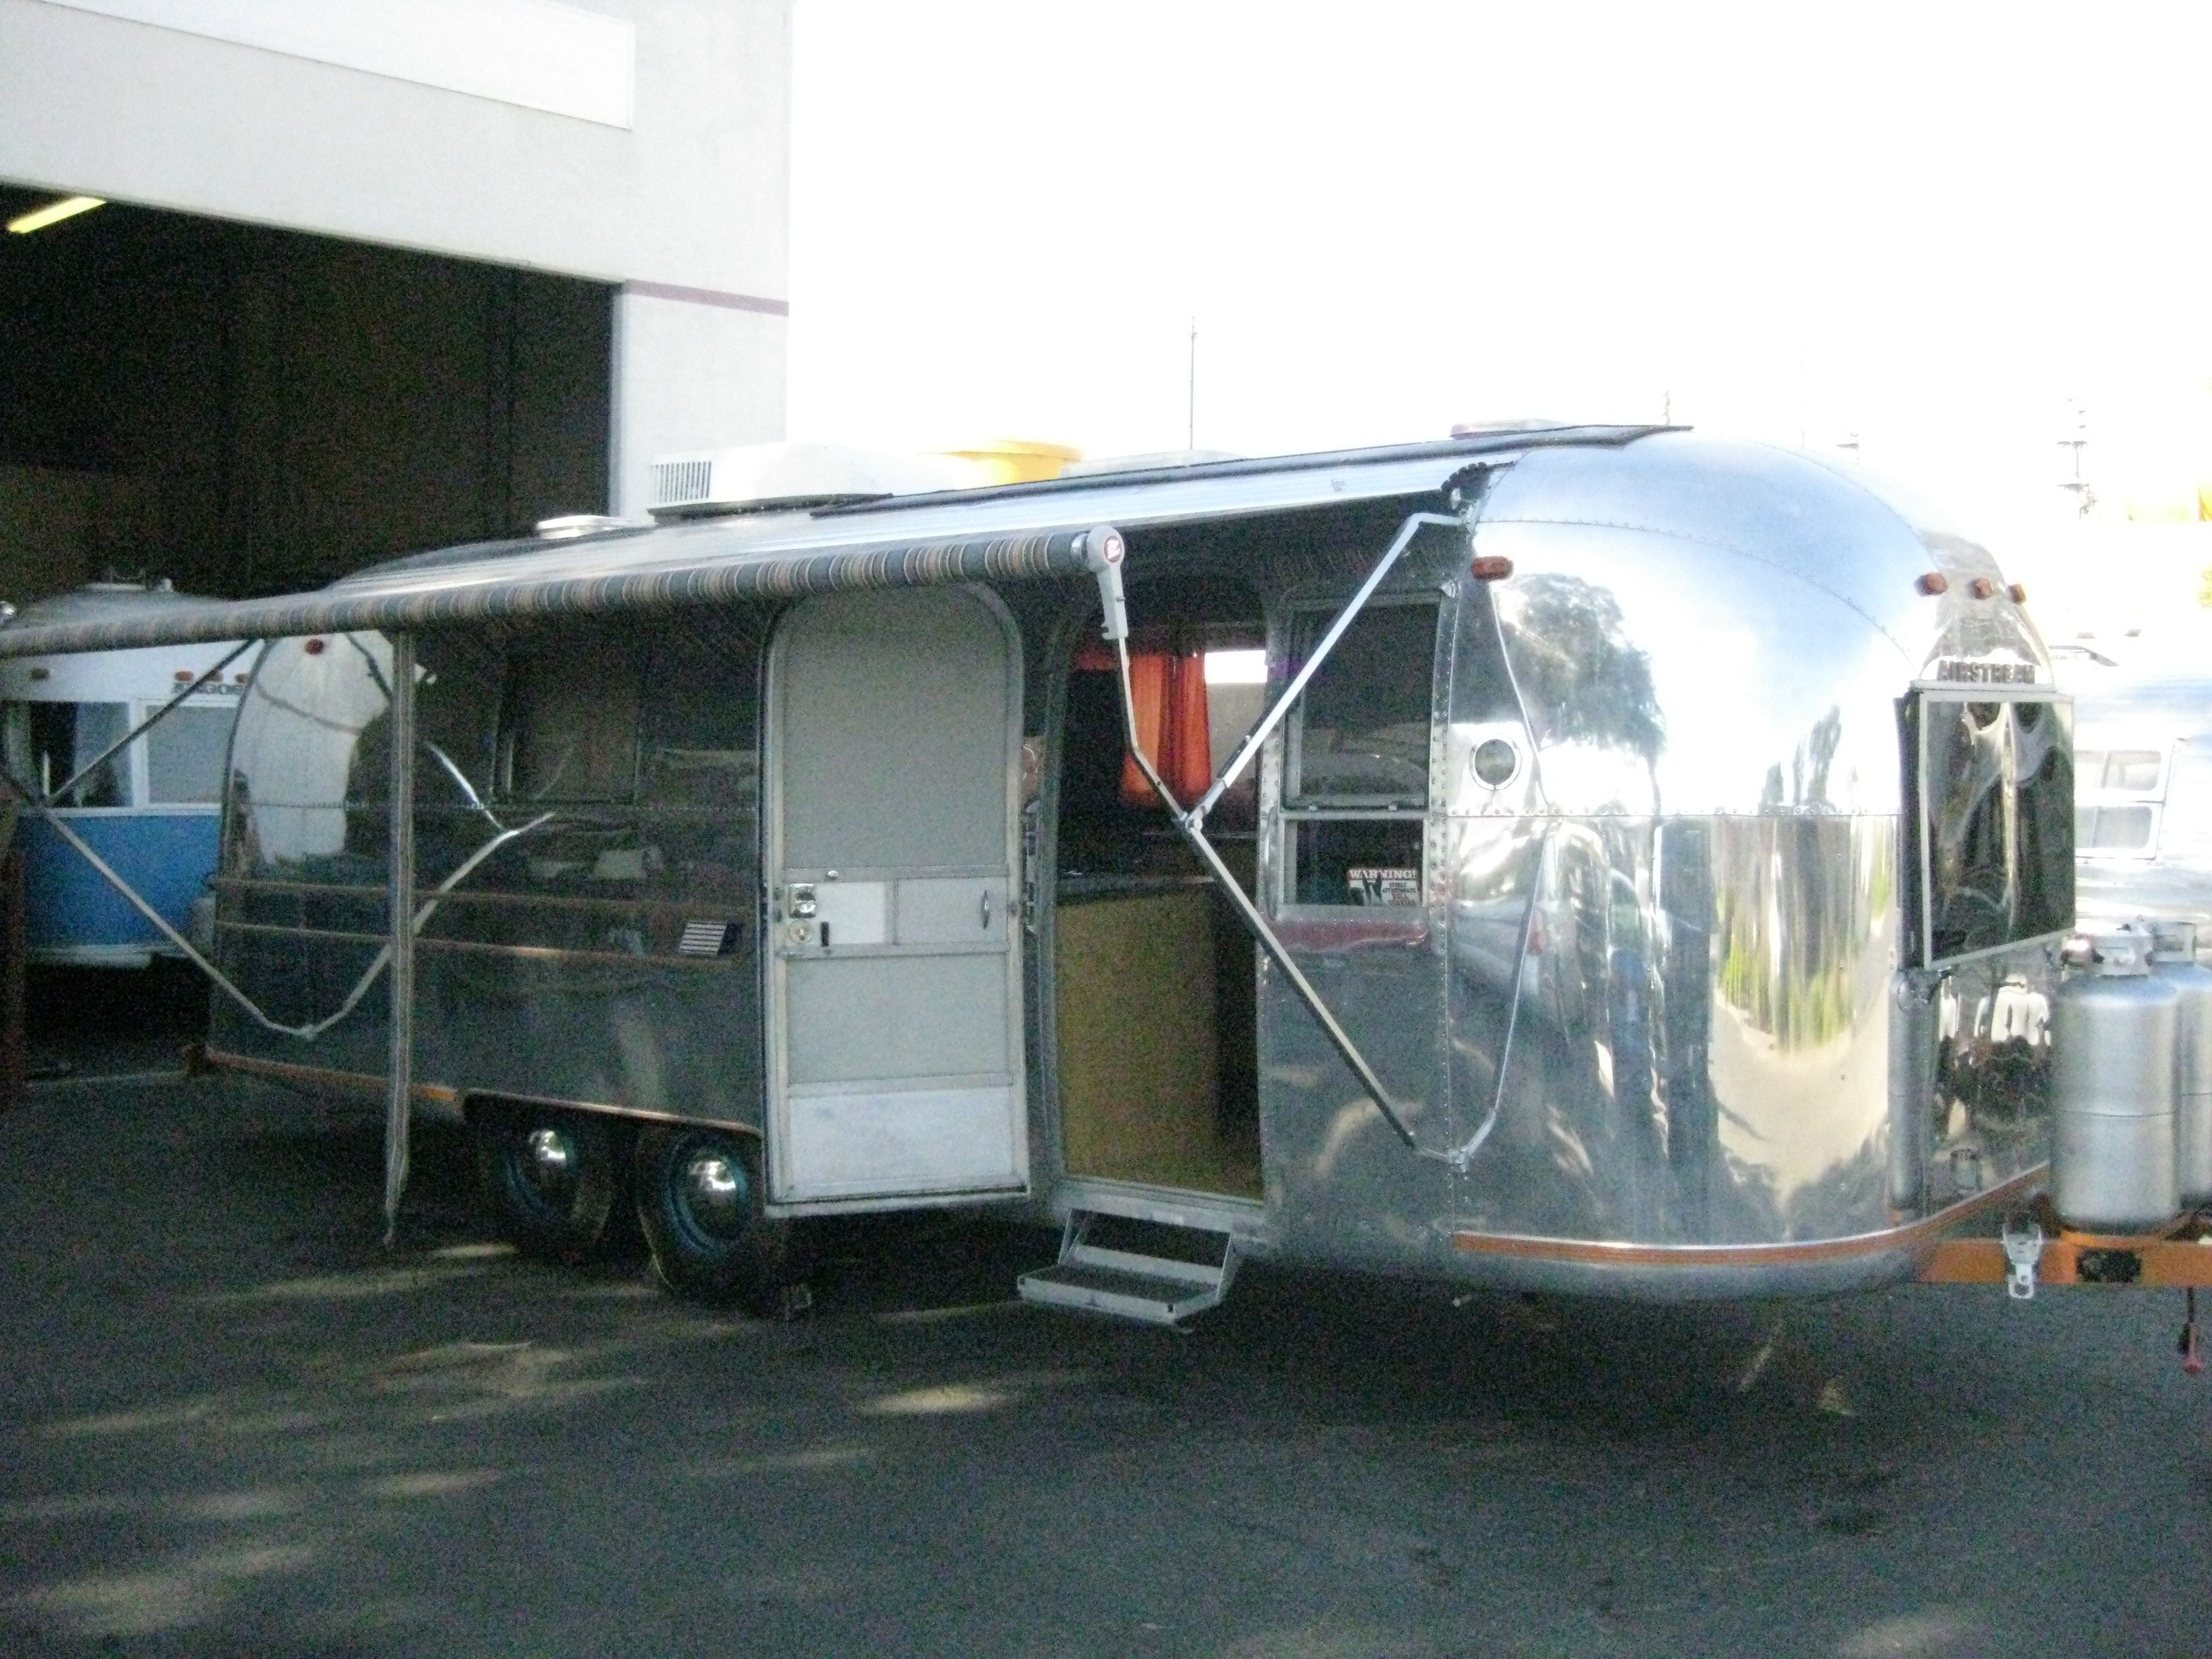 boondock tag awning or trailer can if awnings img rv the hardware horse hanging you from closely bust look torn see